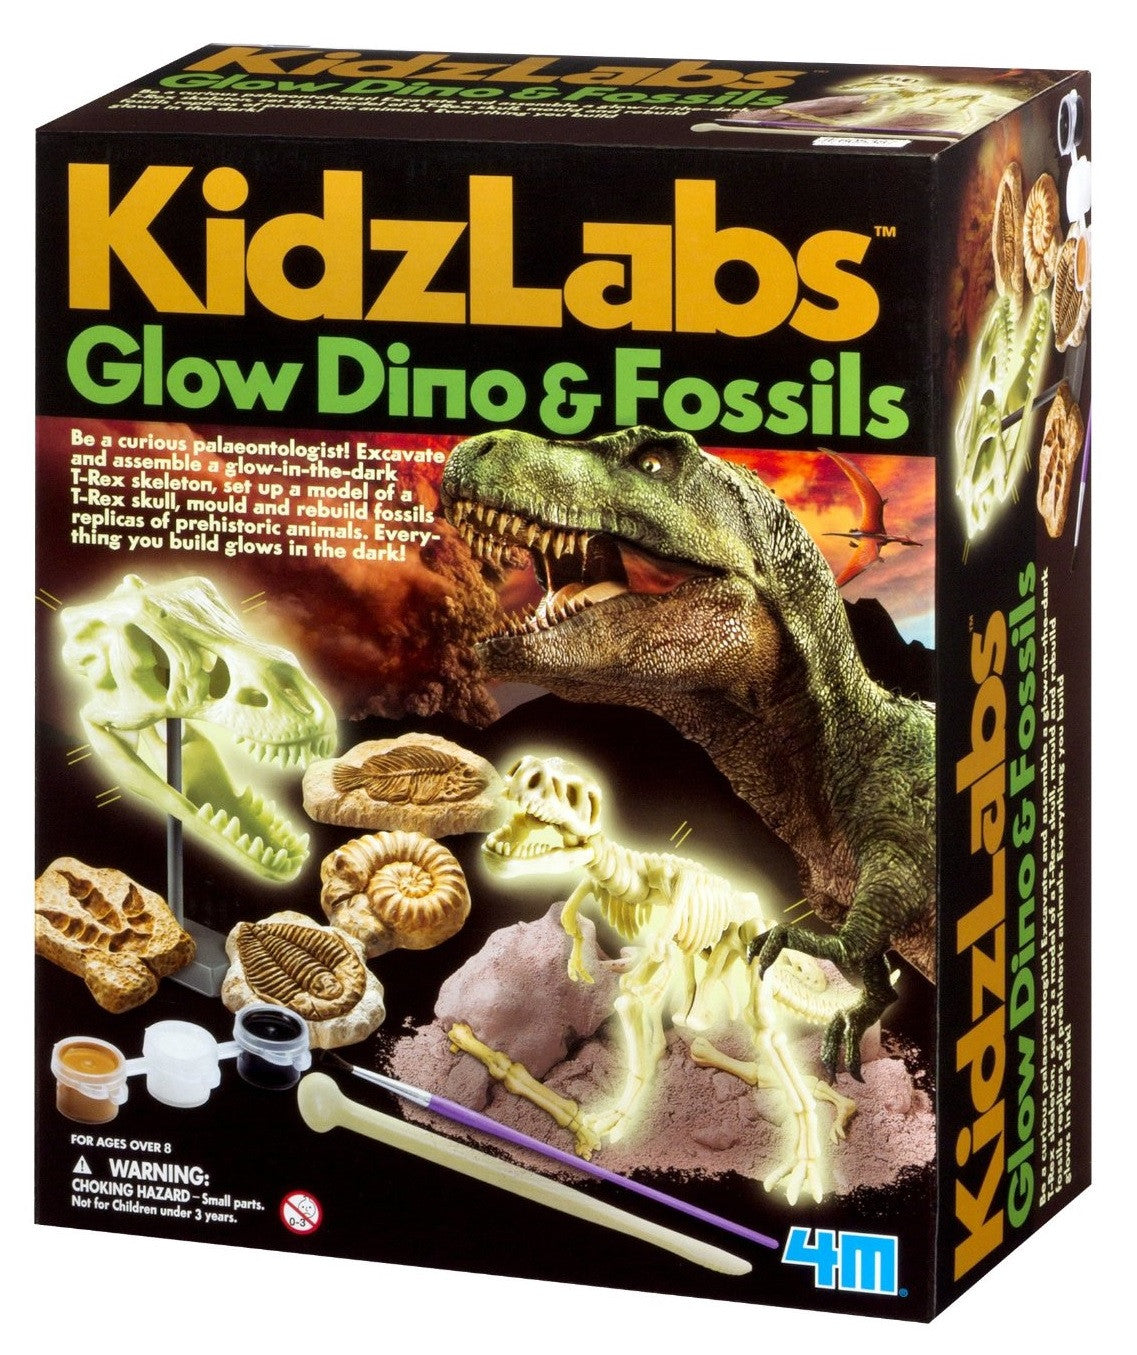 KidzLabs Glow Dino & Fossils Dinosaur Excavation Kit - Off The Wall Toys and Gifts